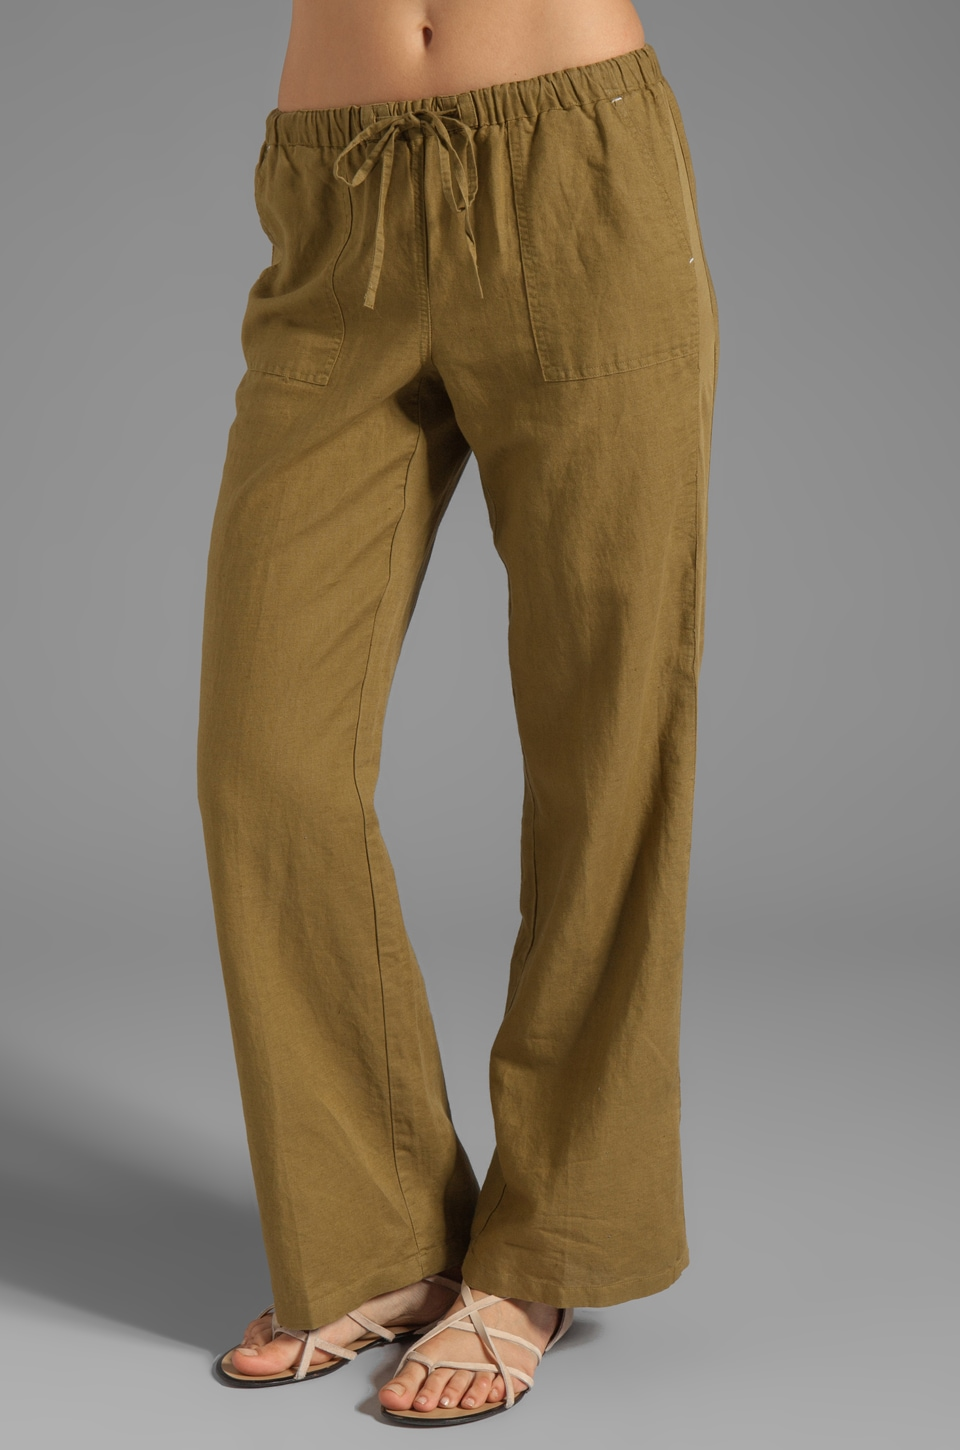 C&C California Linen Cotton Straight Leg Pant in Nutria